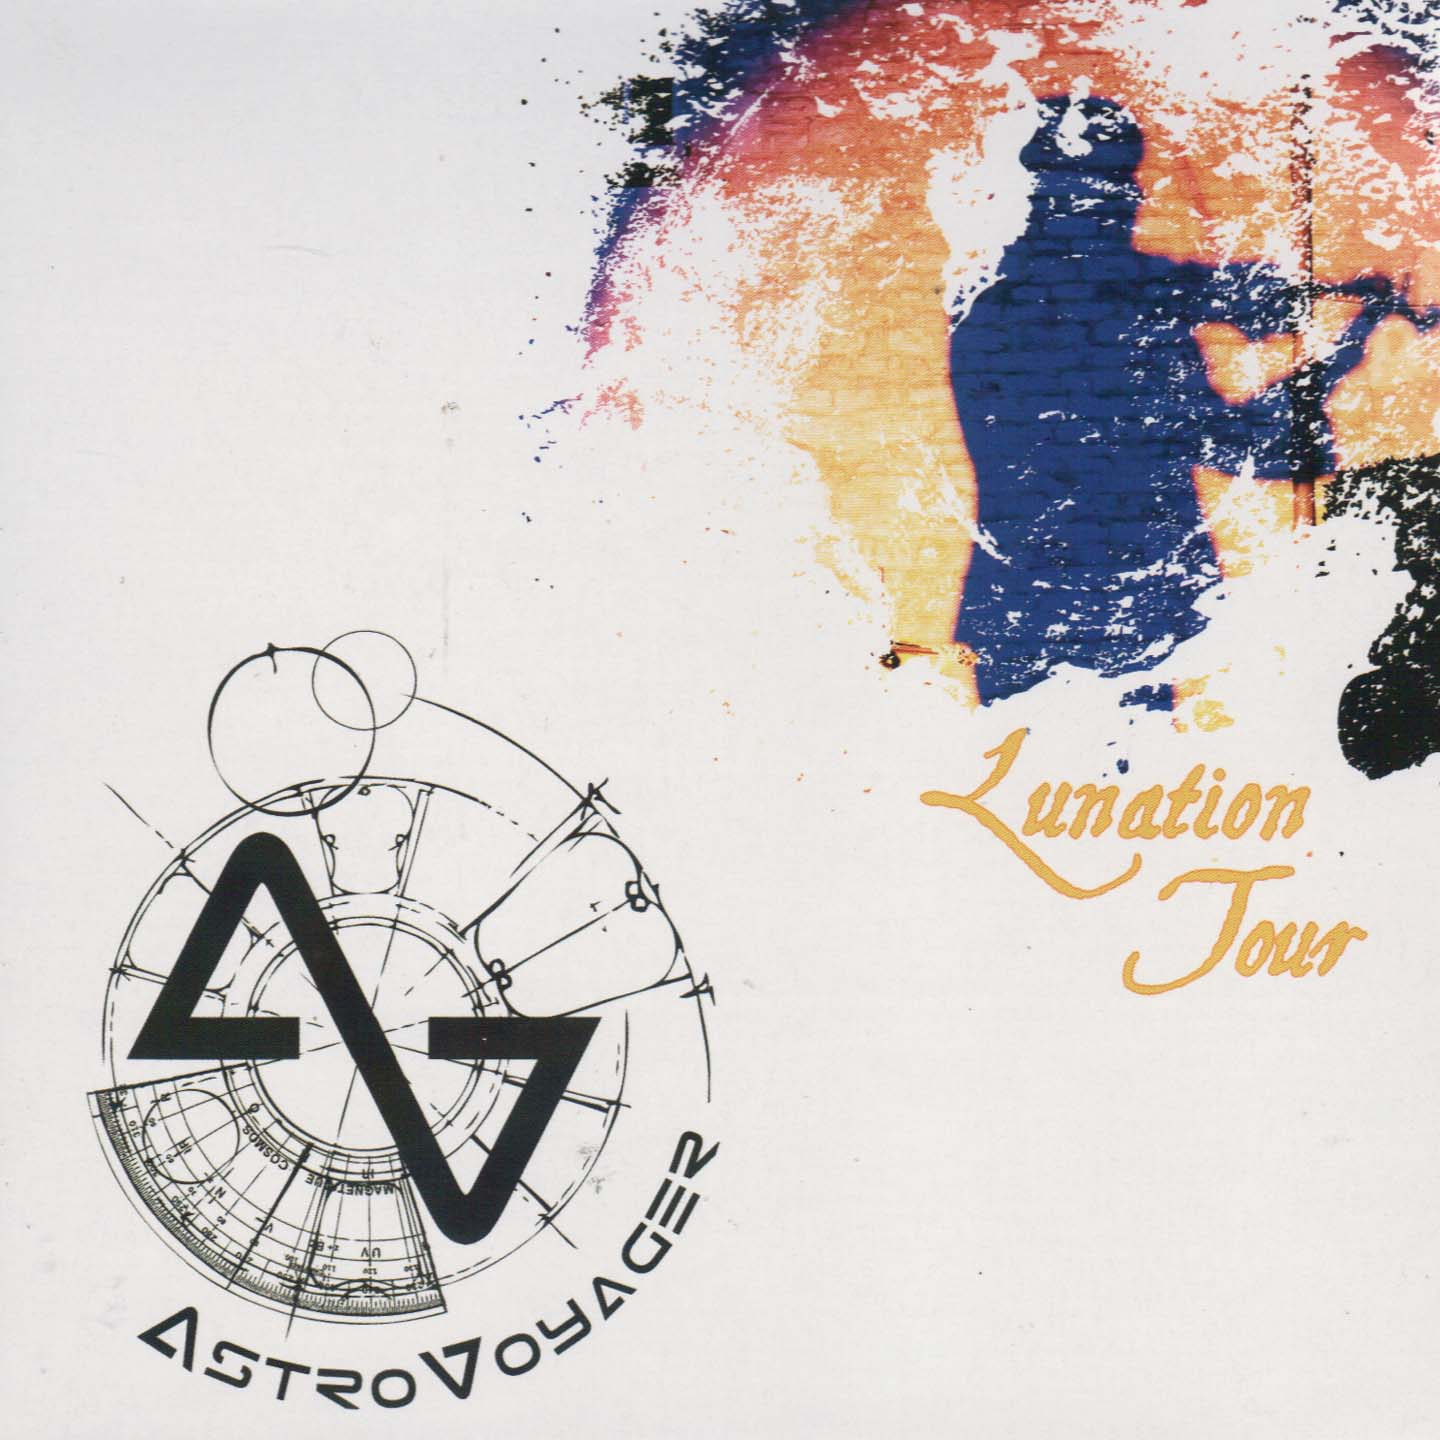 ASTROVOYAGER - Lunation Tour - DVD x 5